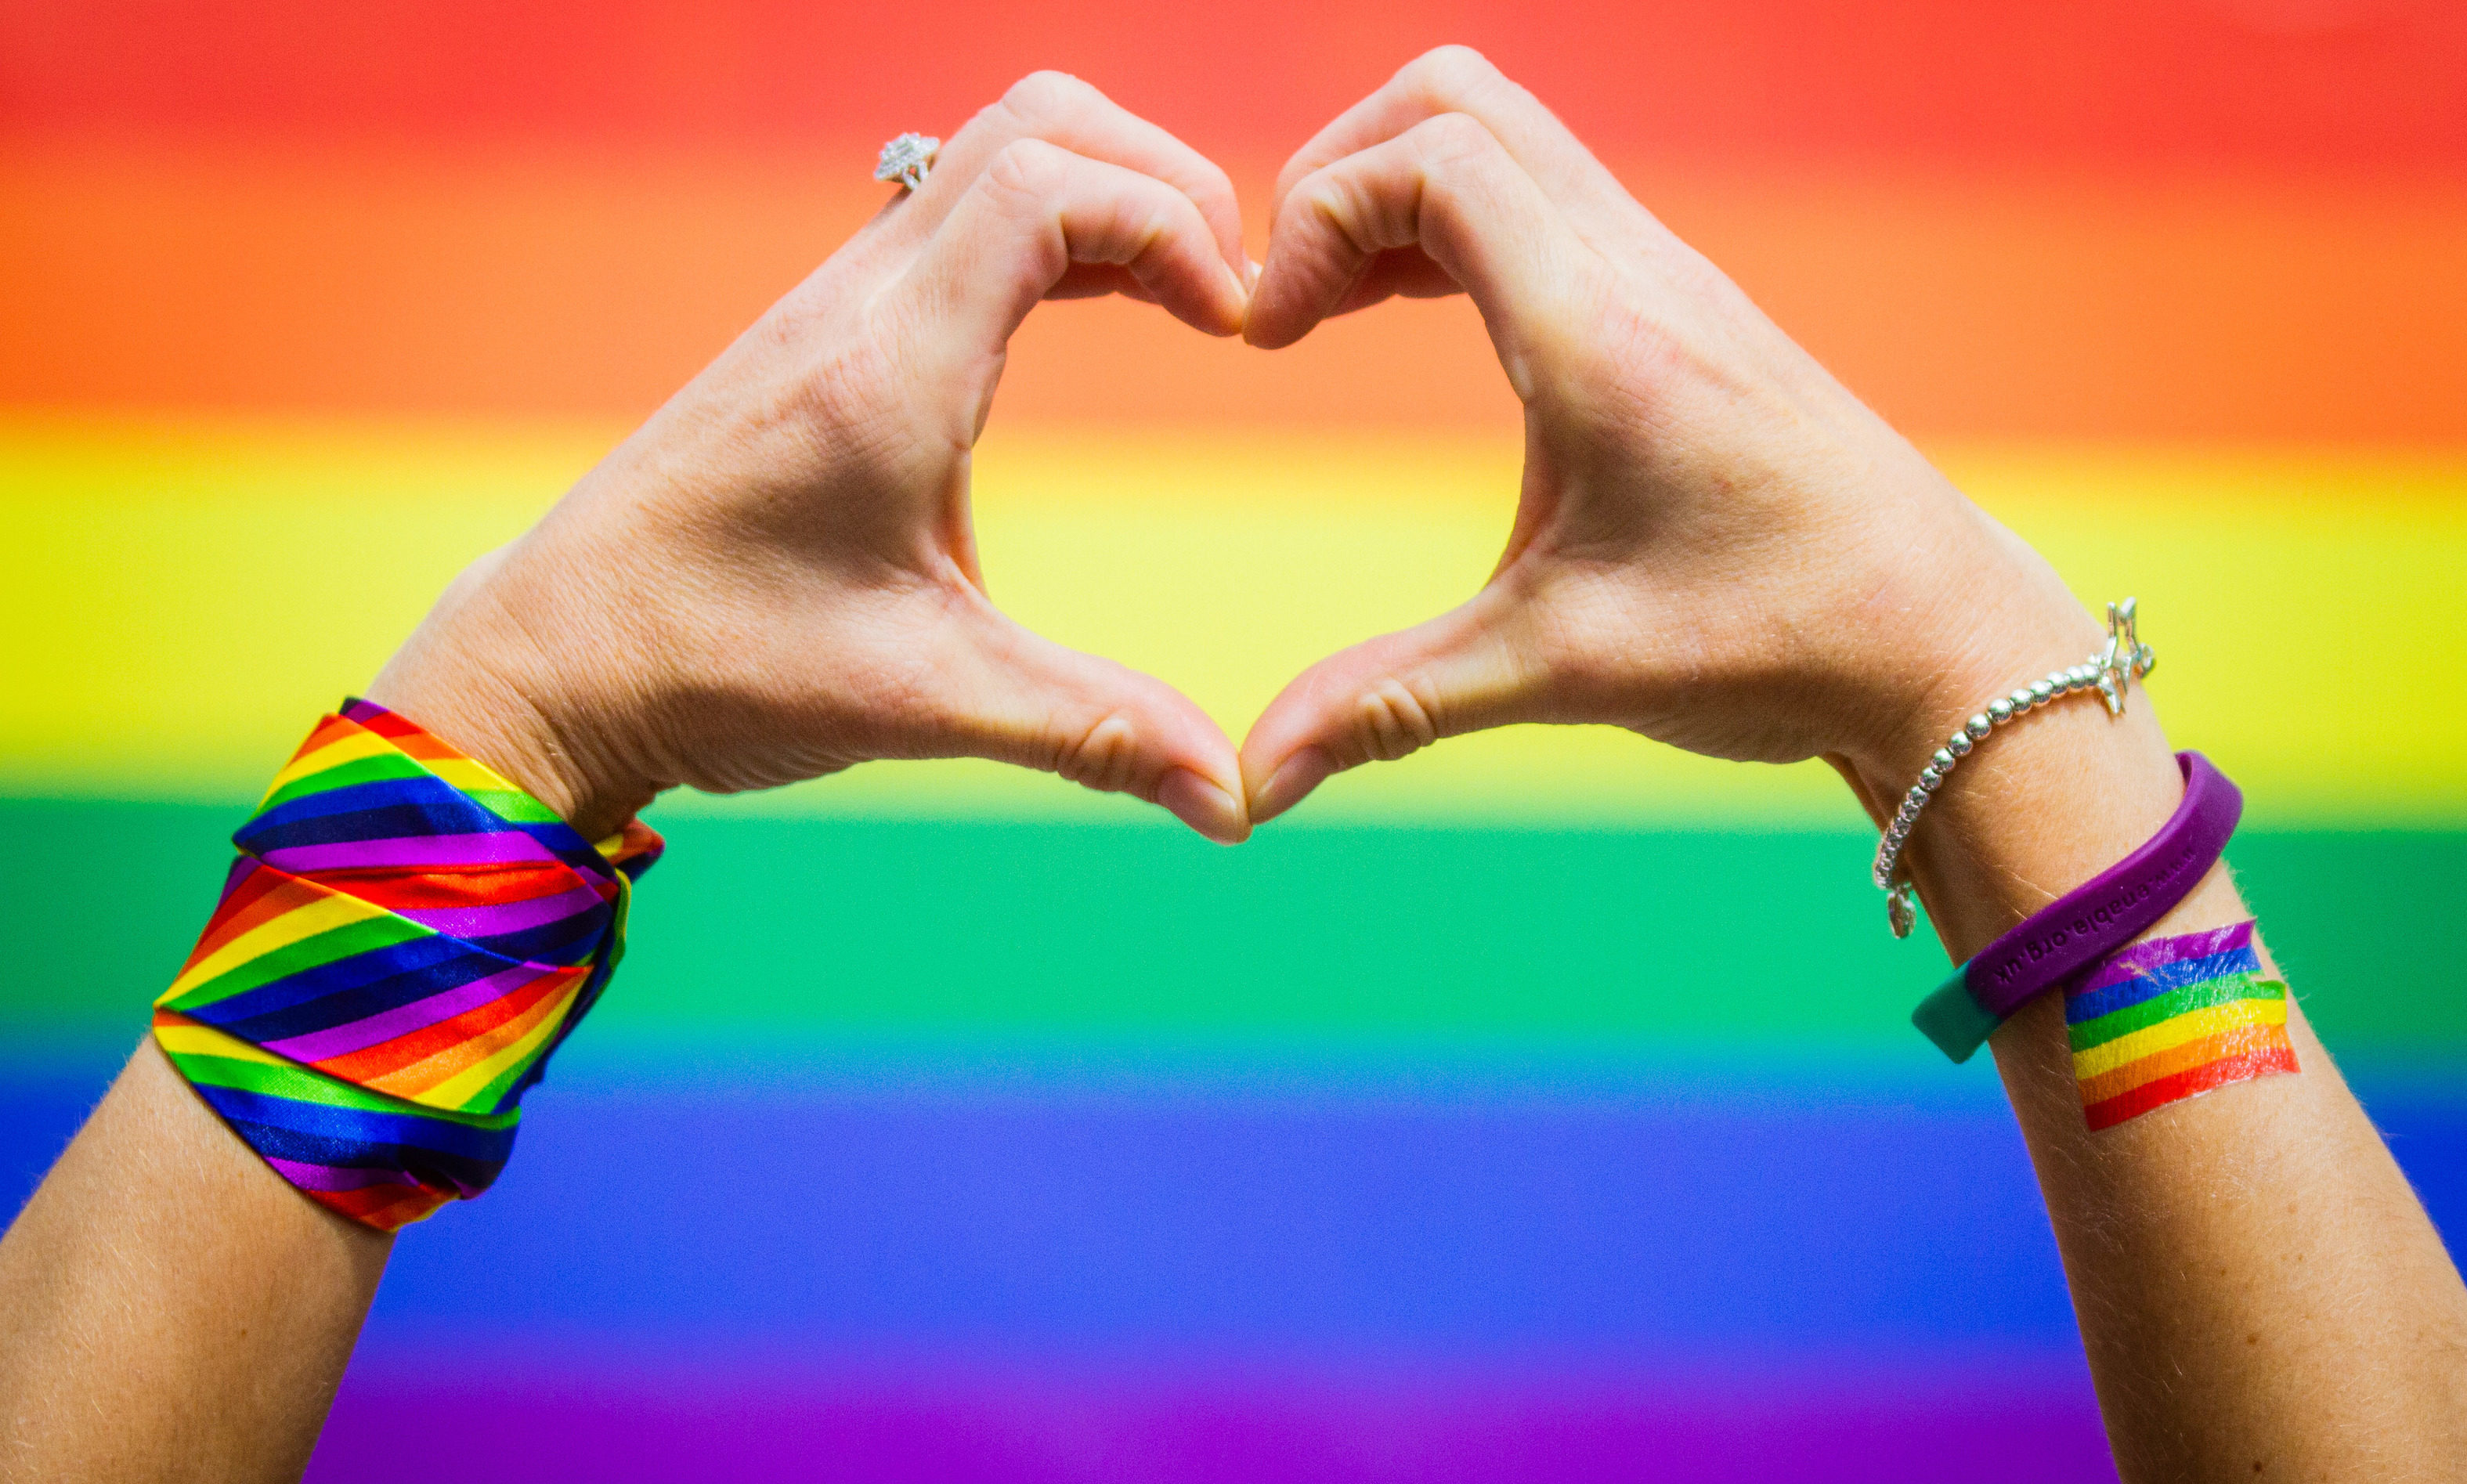 The hand heart with the pride flag in the background.